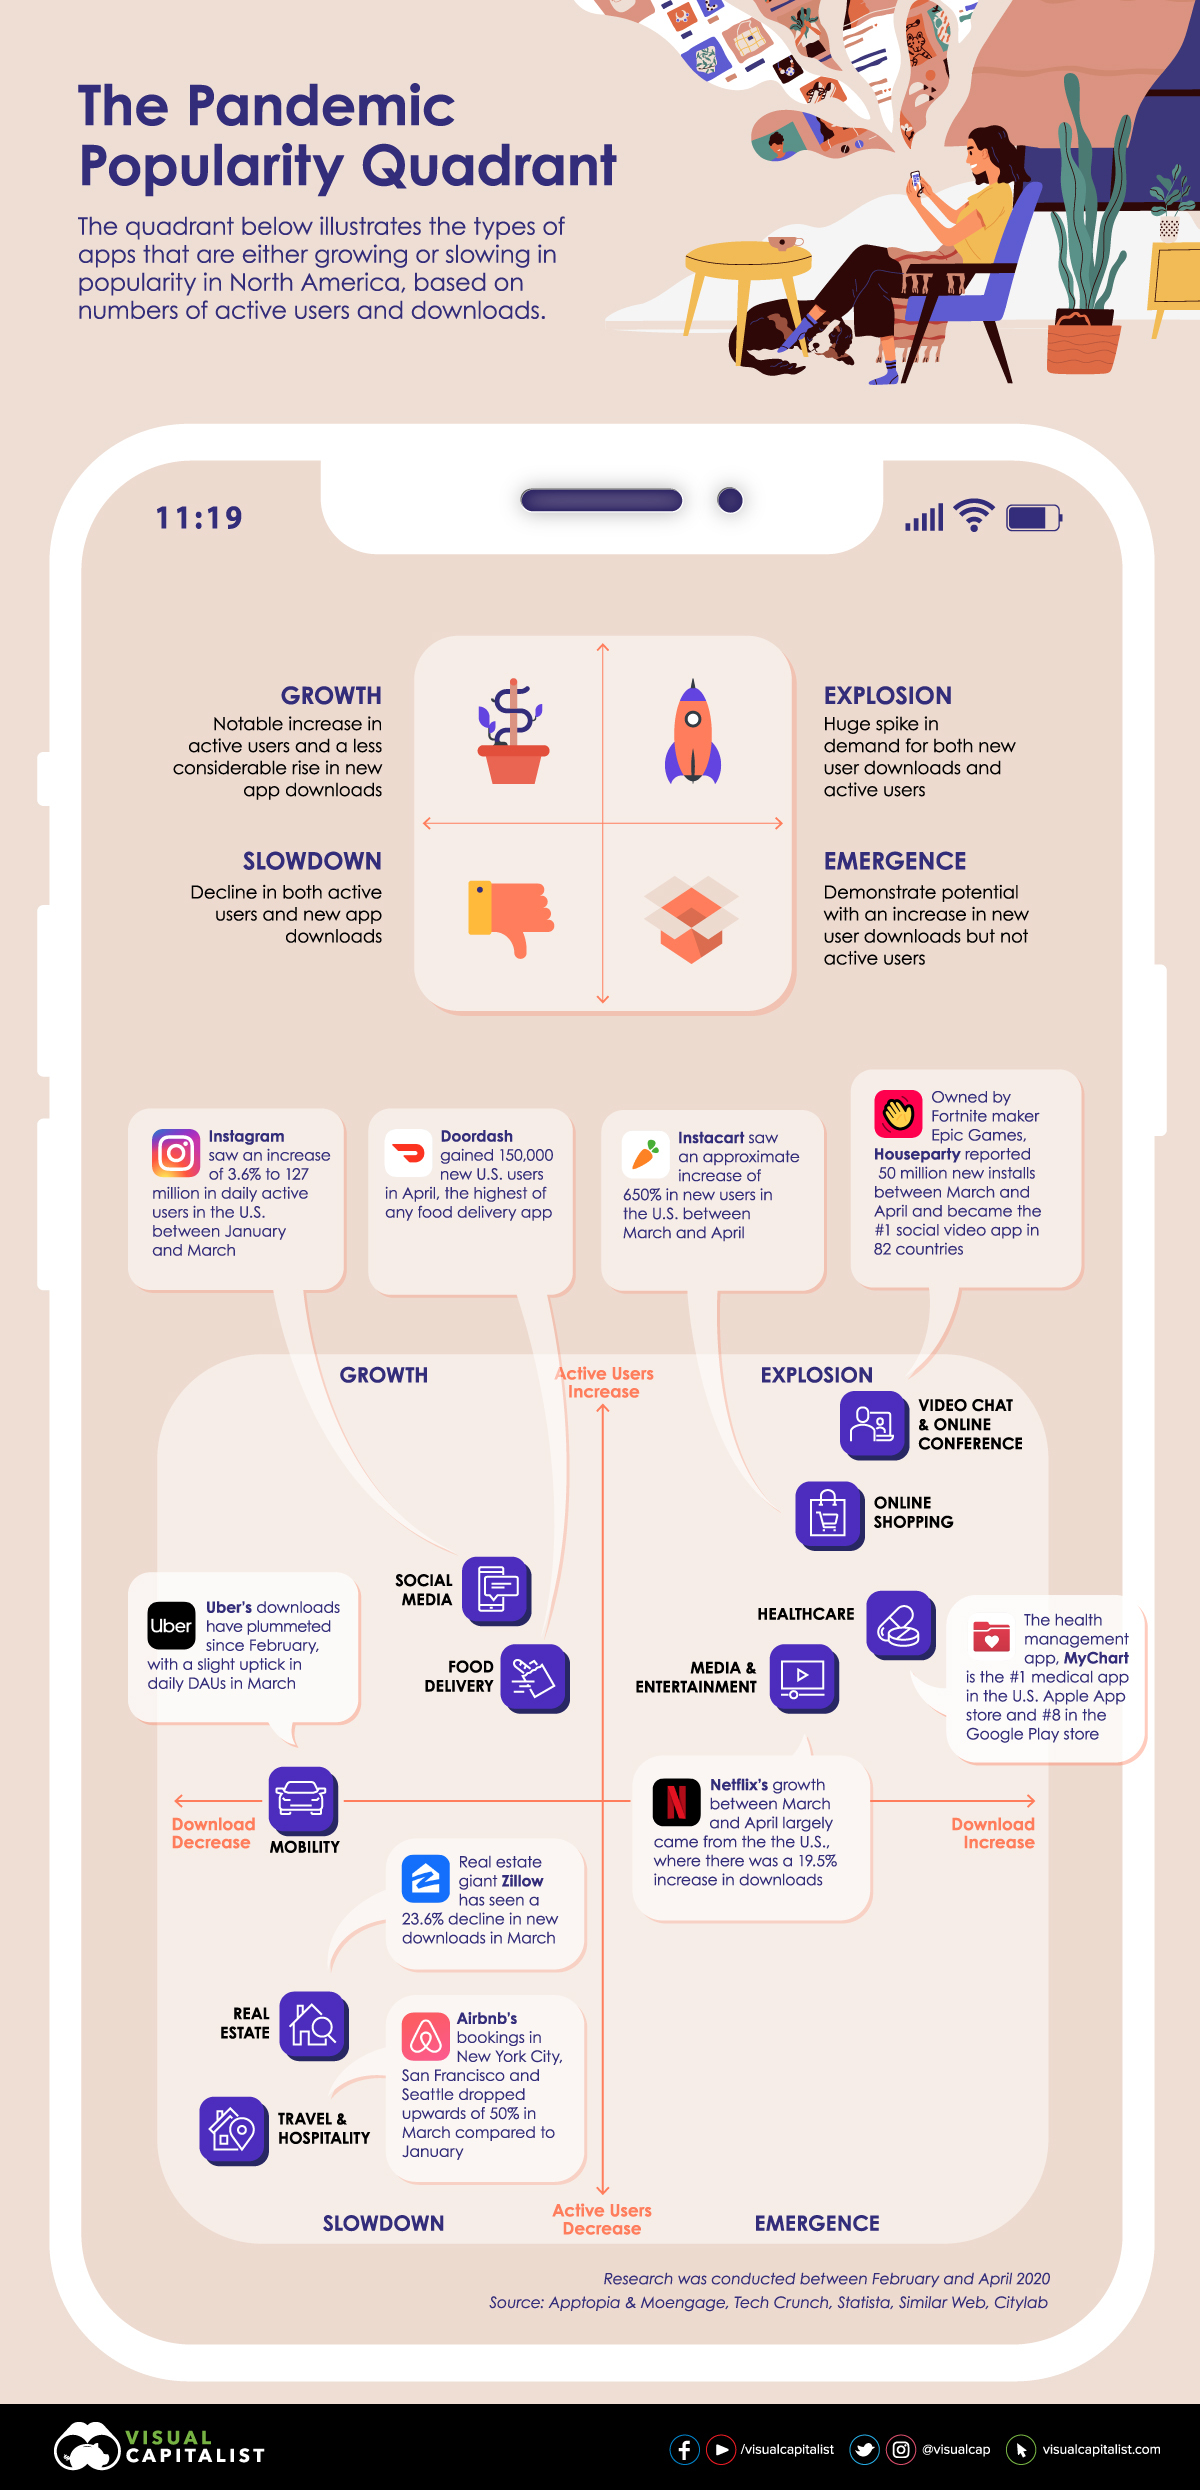 The COVID-19 Impact on App Popularity #infographic